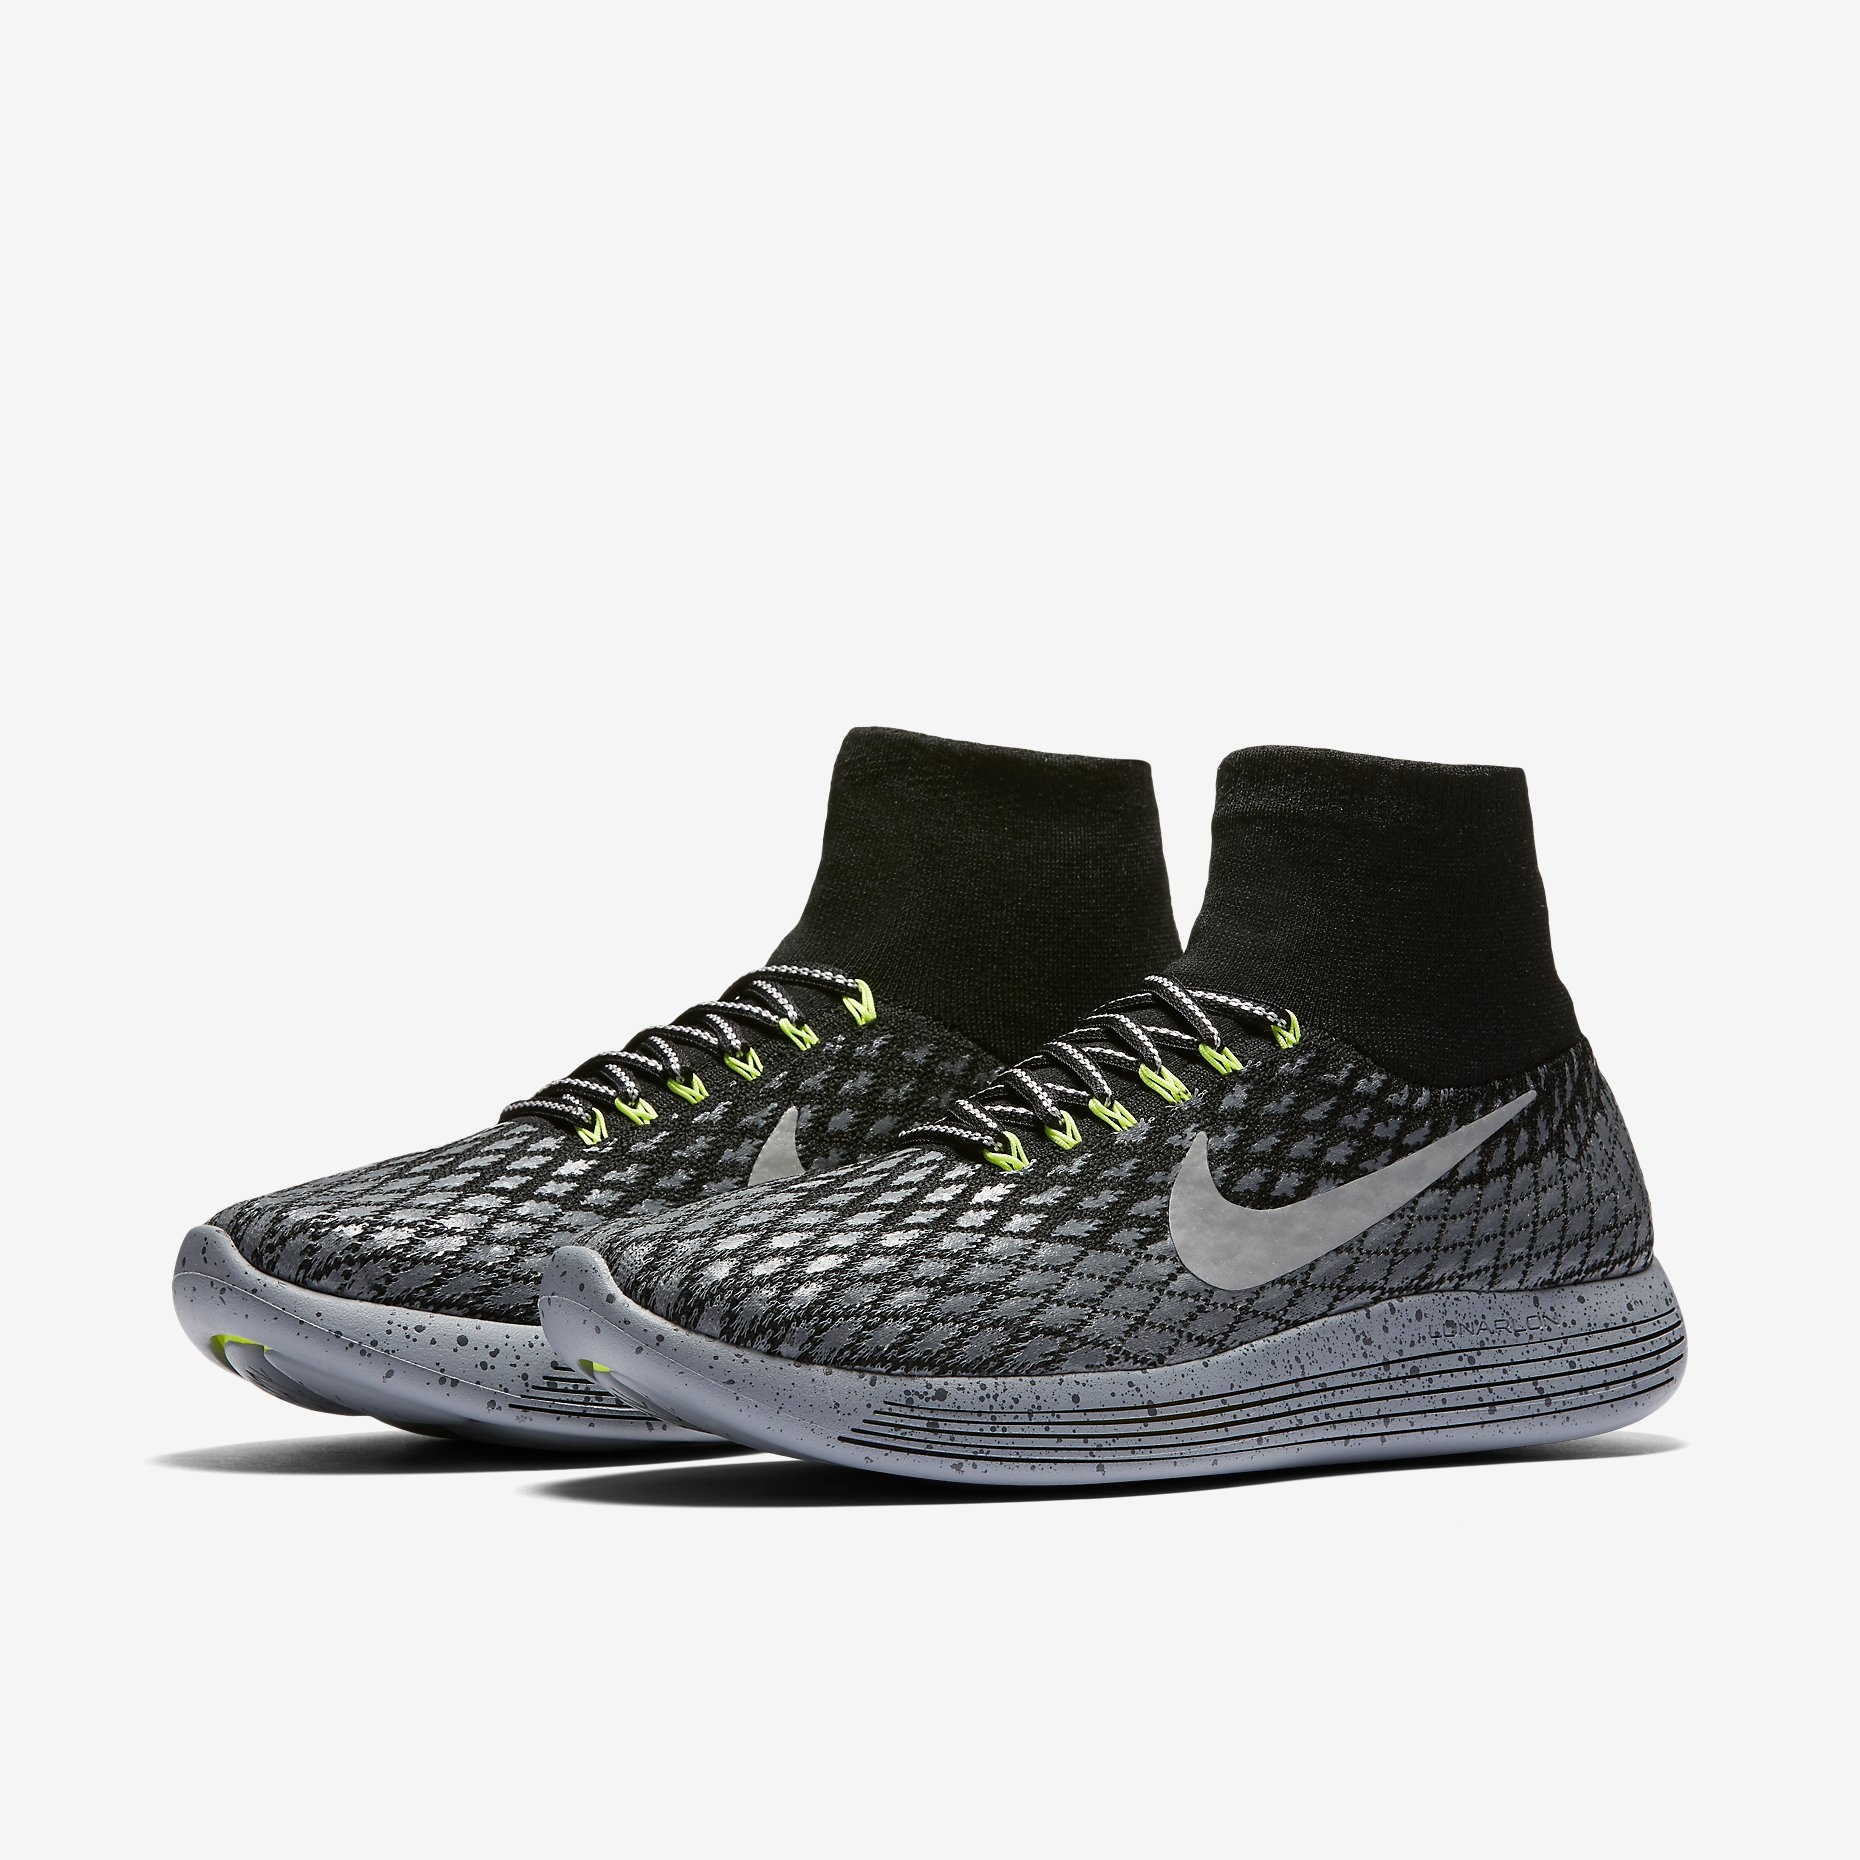 Nike LunarEpic Flyknit Shield Men's